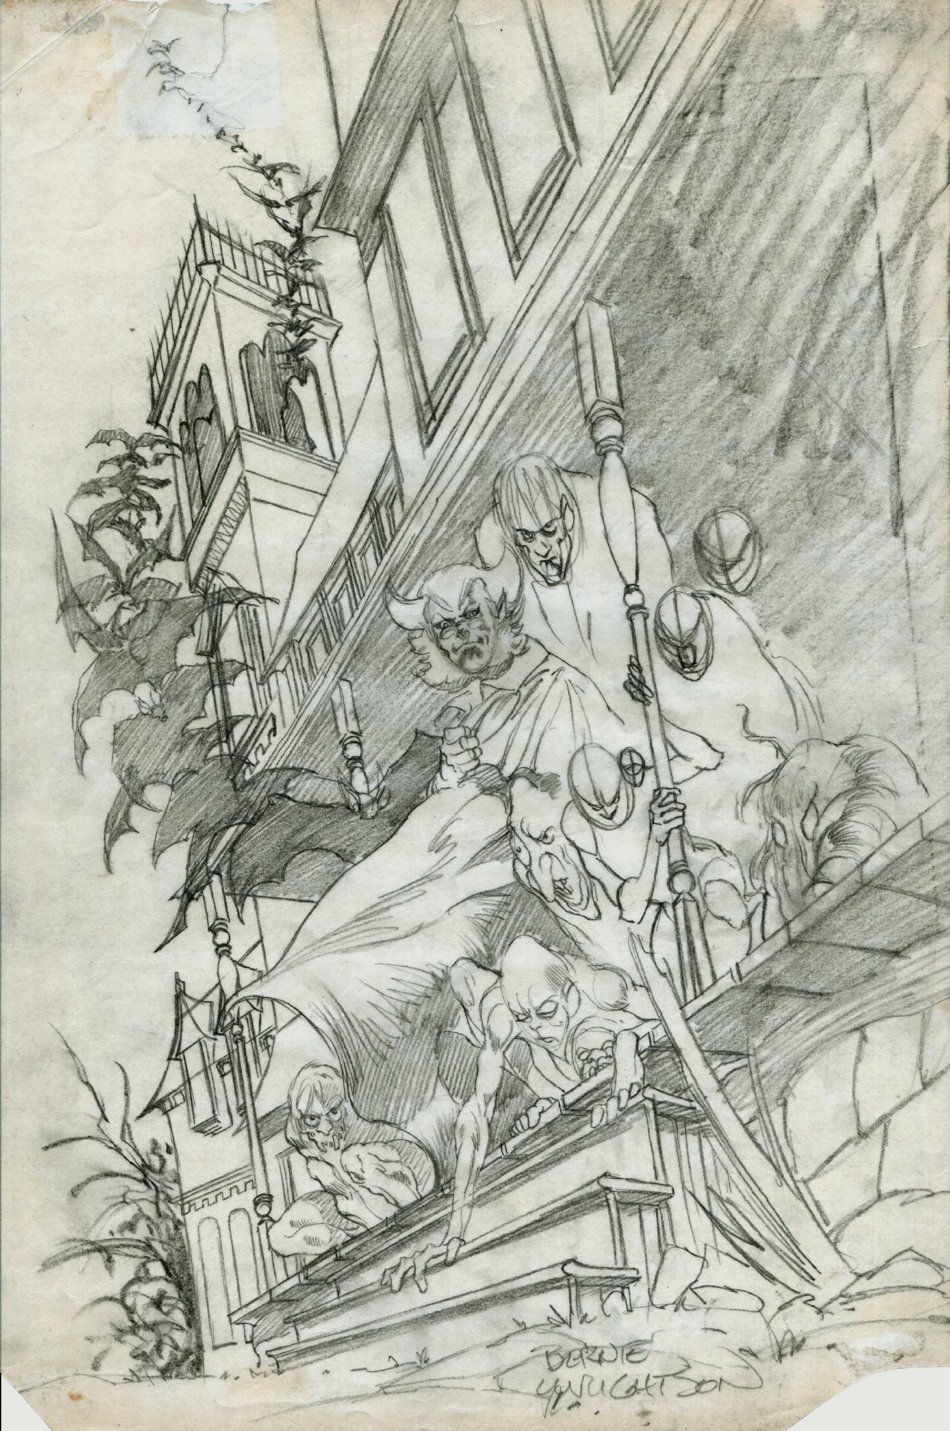 Tales From The House Of Mystery #2 cover pencils (1973)